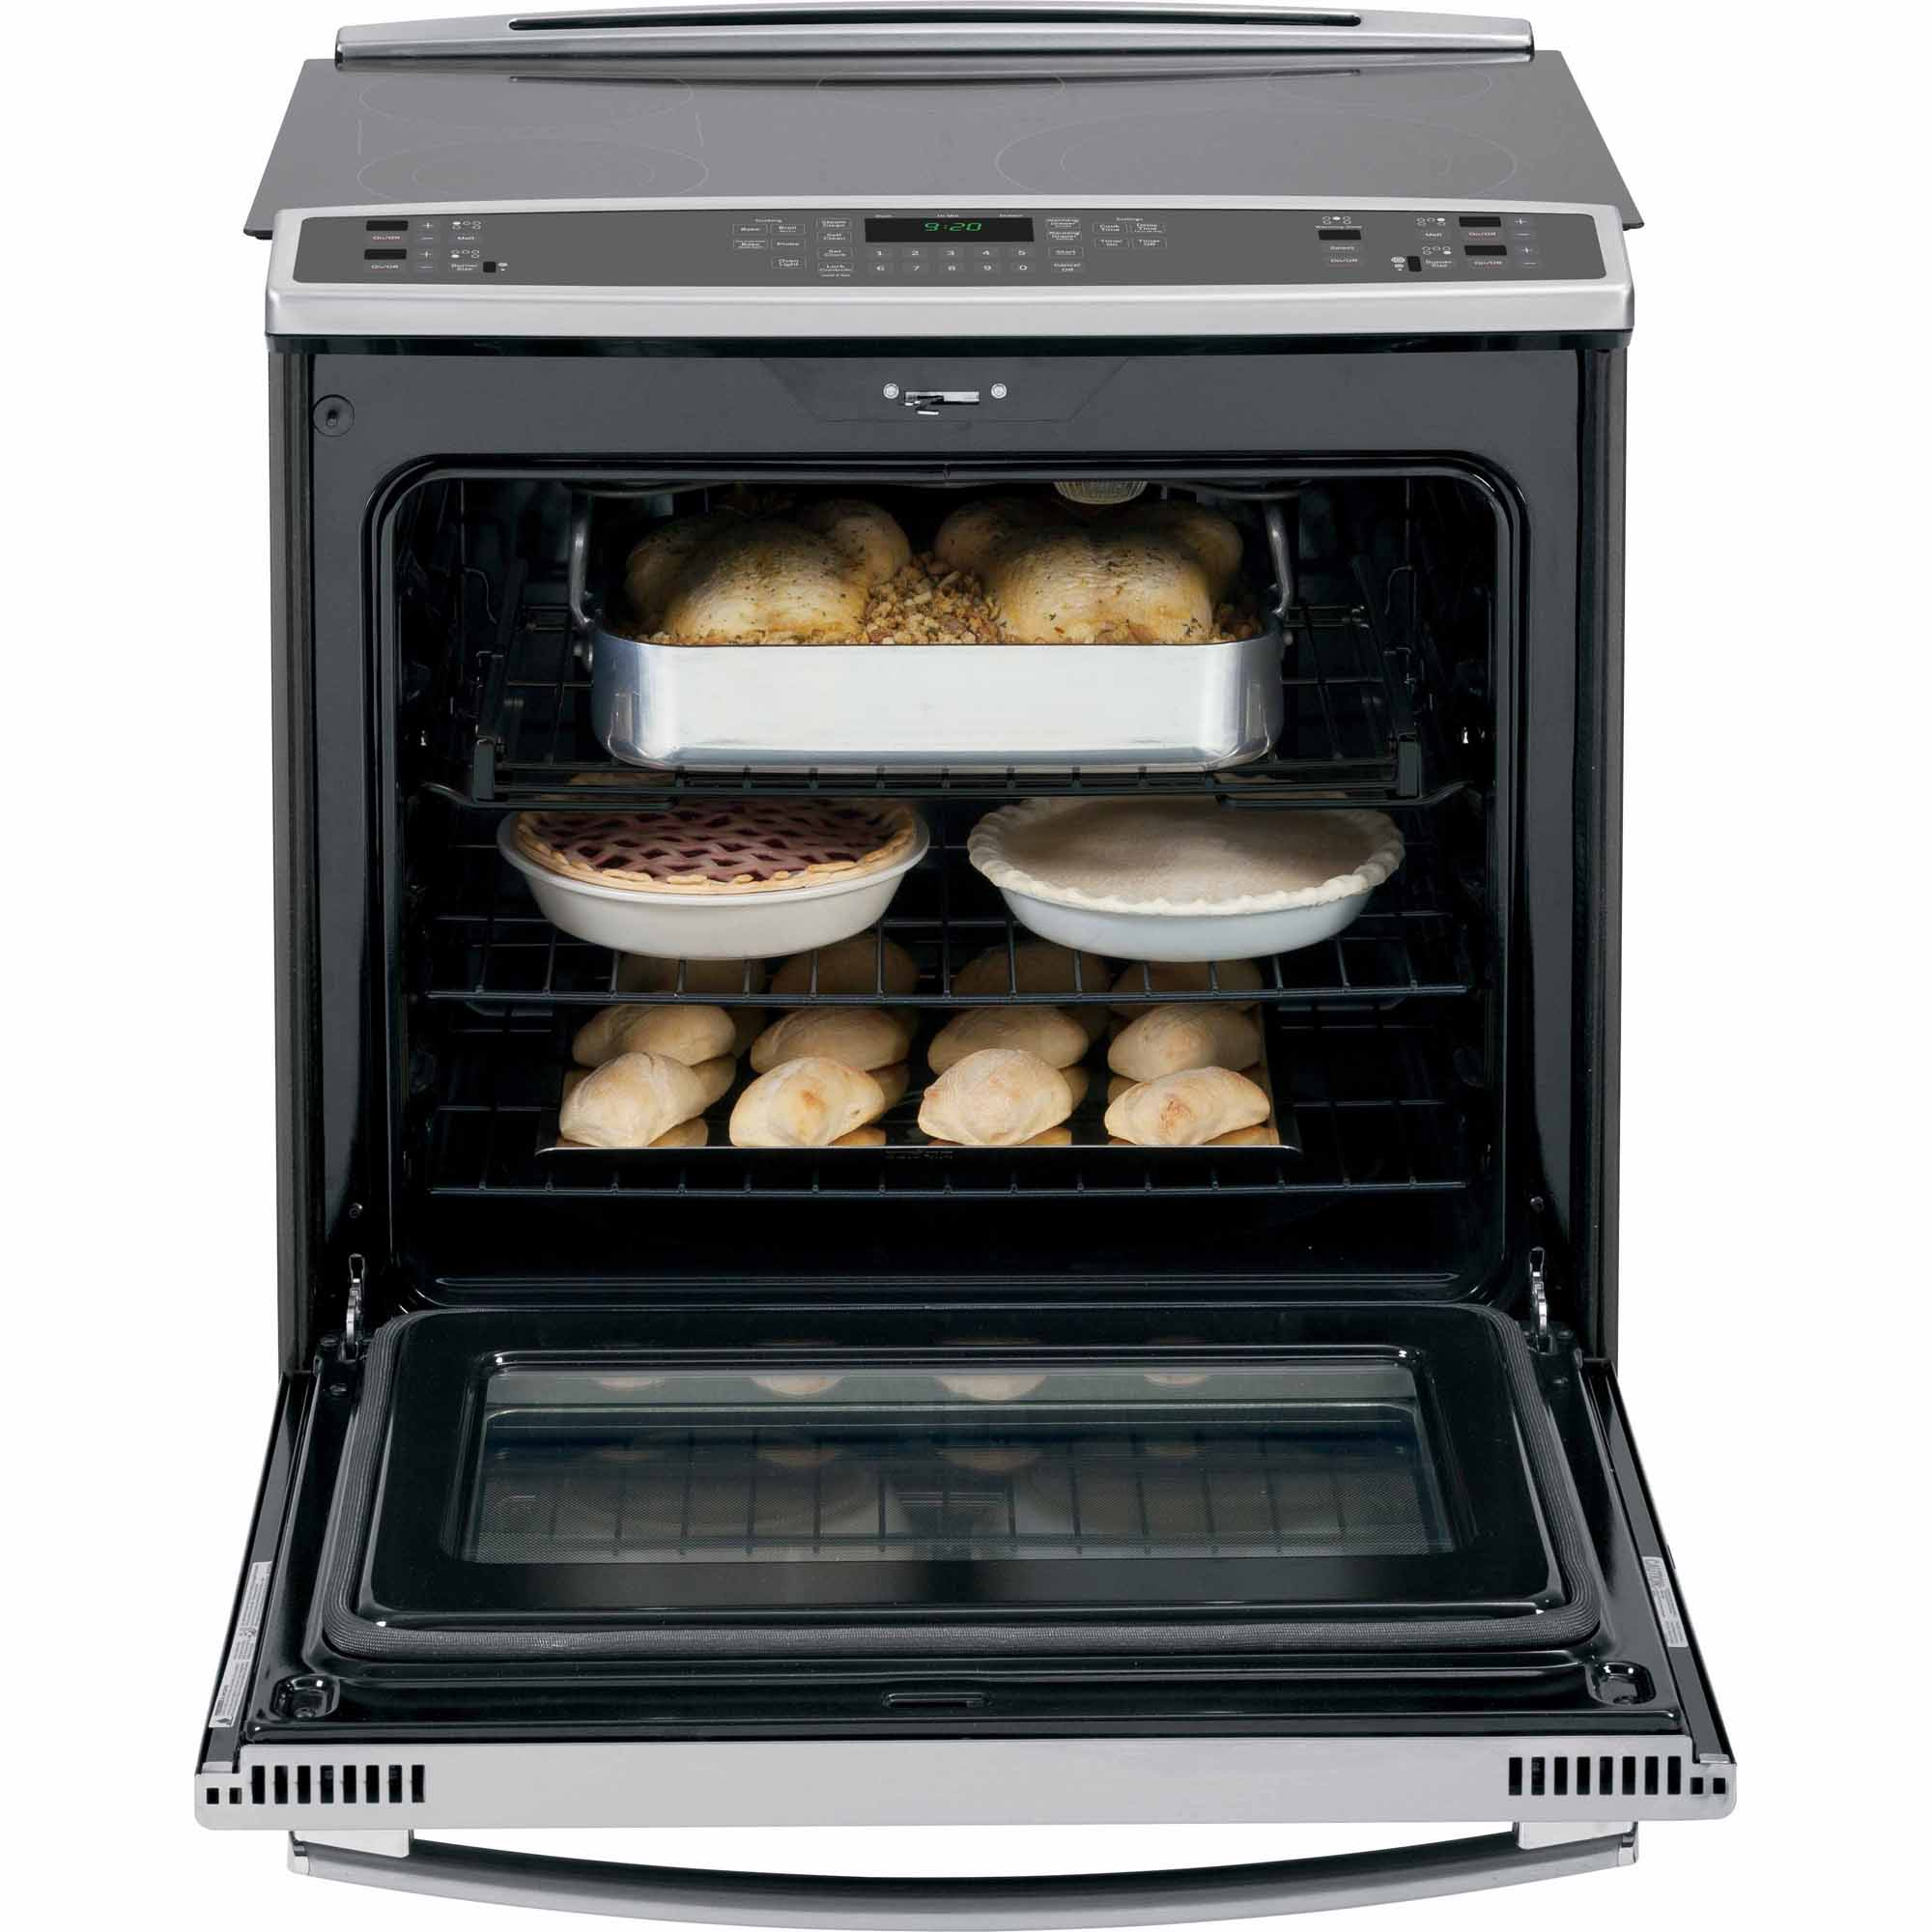 GE Profile PS920SFSS 5.3 cu. ft. Slide-In Electric Range w/ True Convection - Stainless Steel